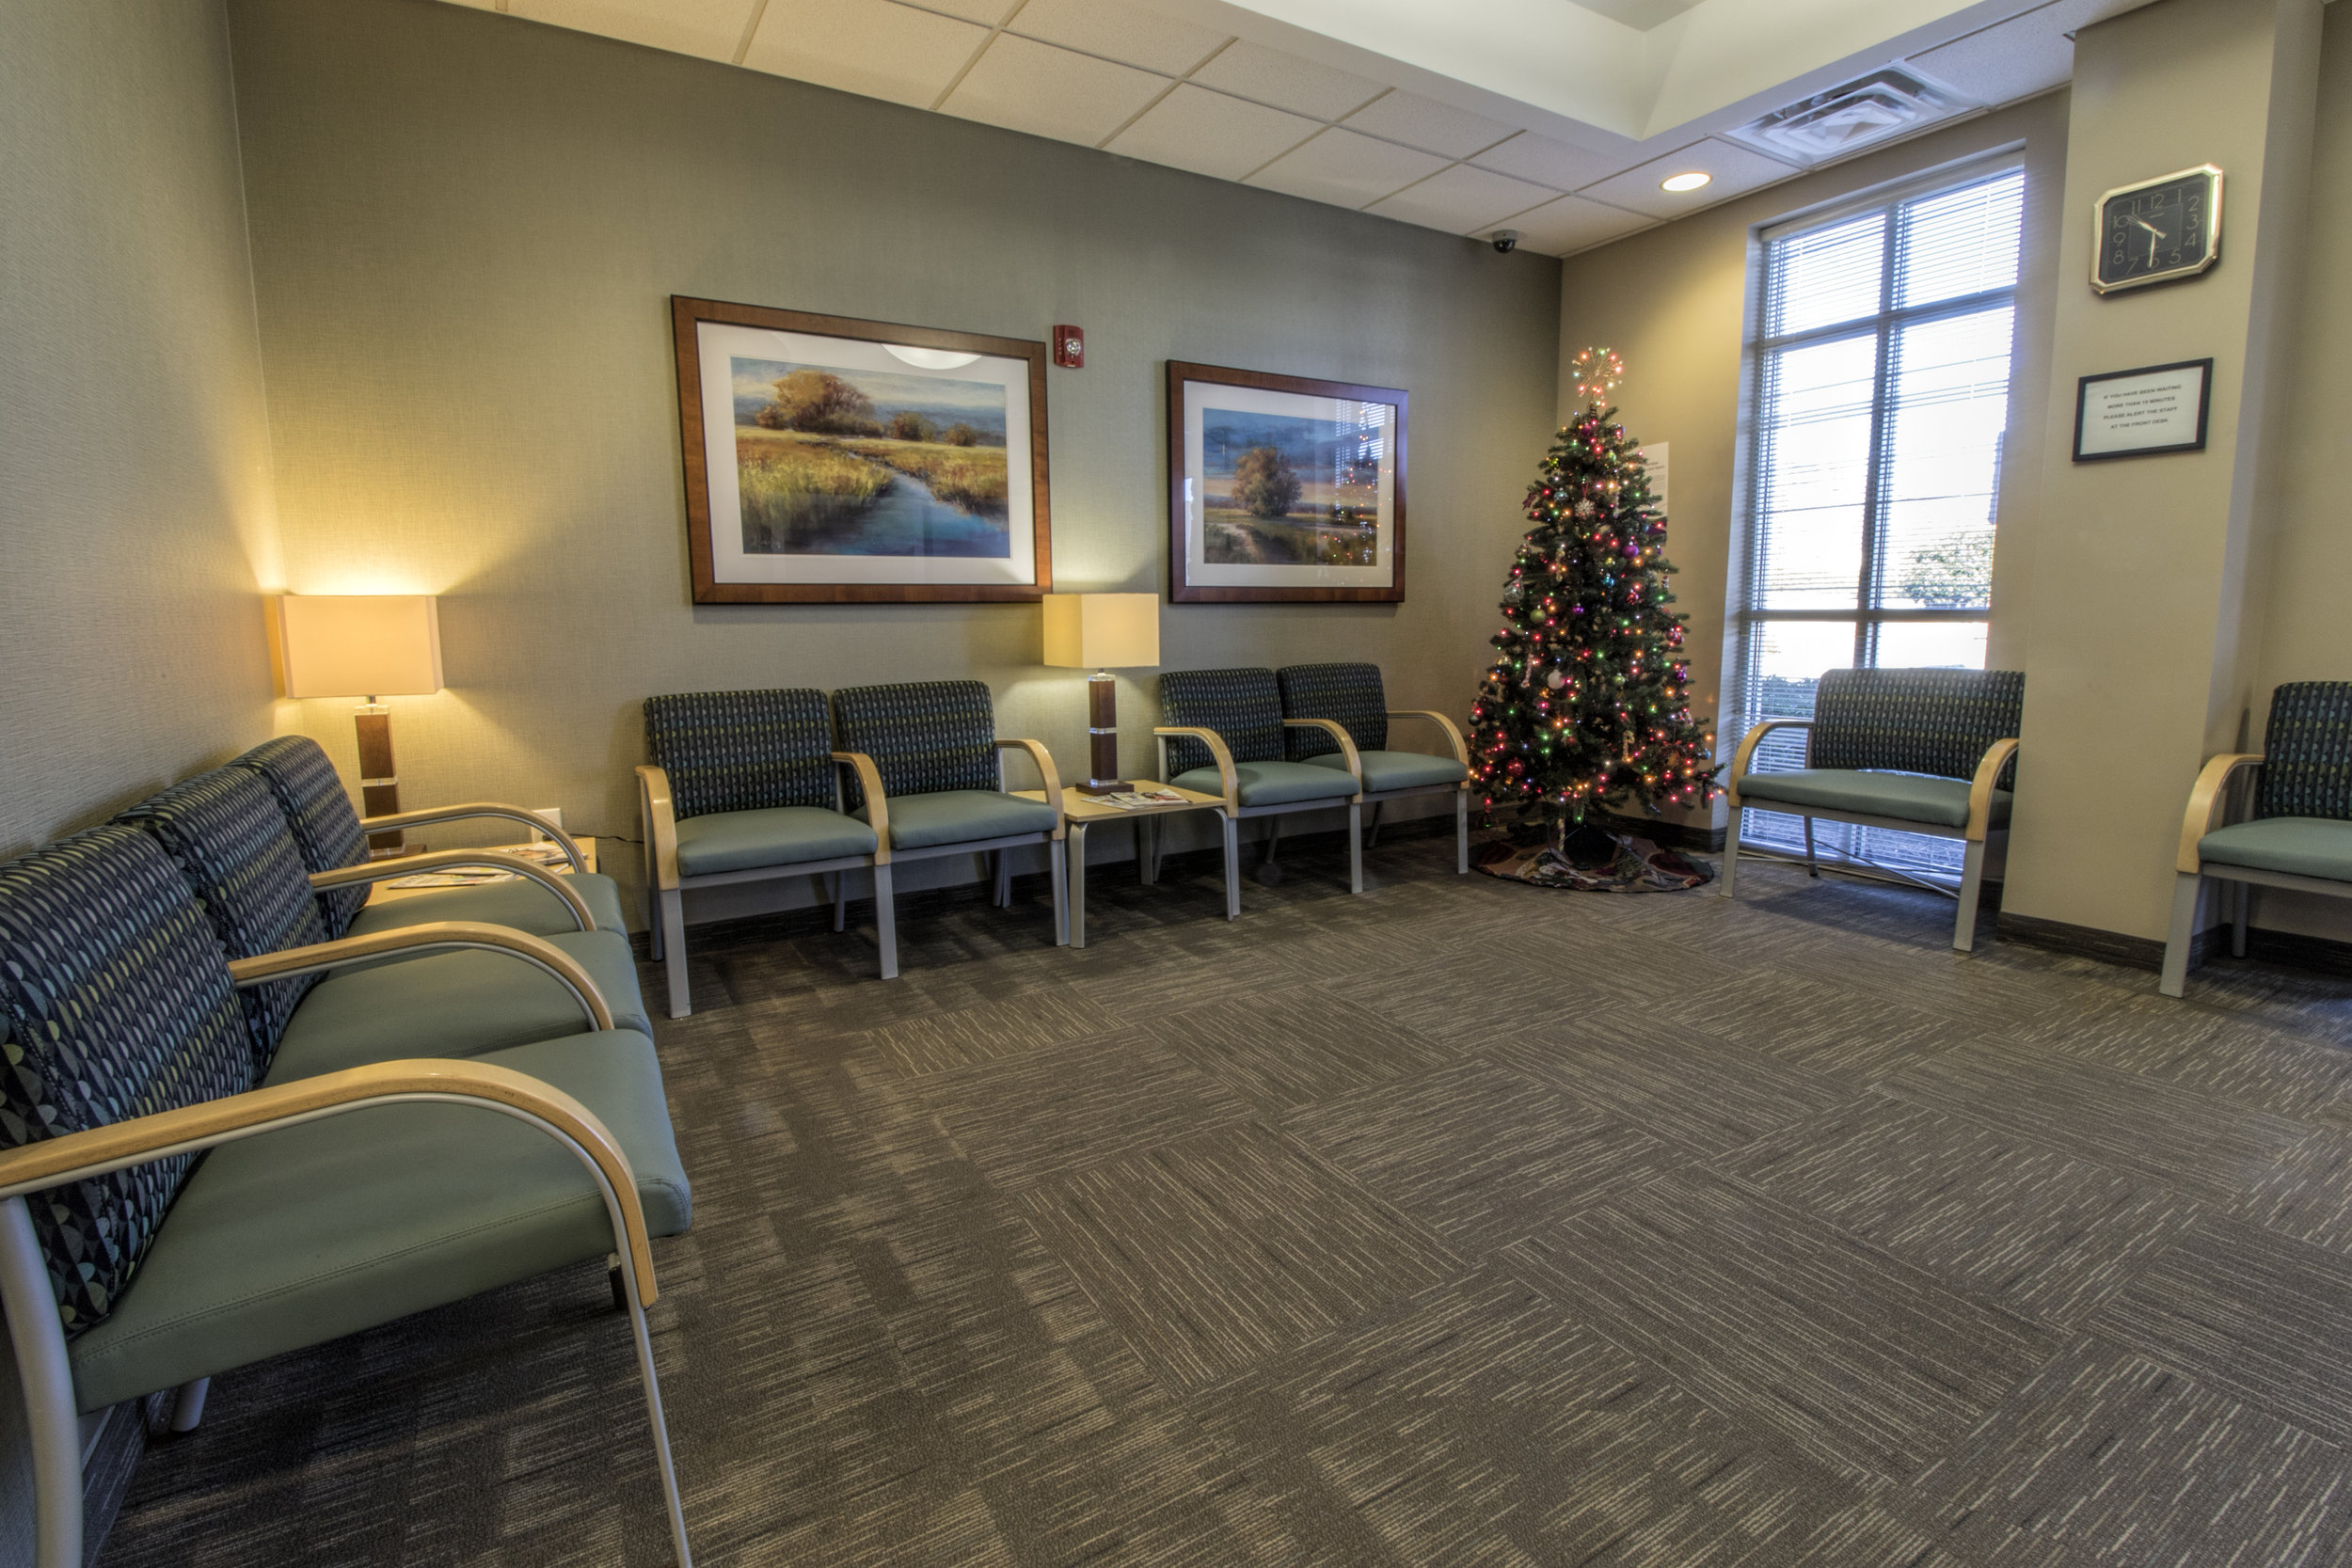 Wake Forest Baptist Medical Center    Department of Psychiatry and Behavioral Medicine